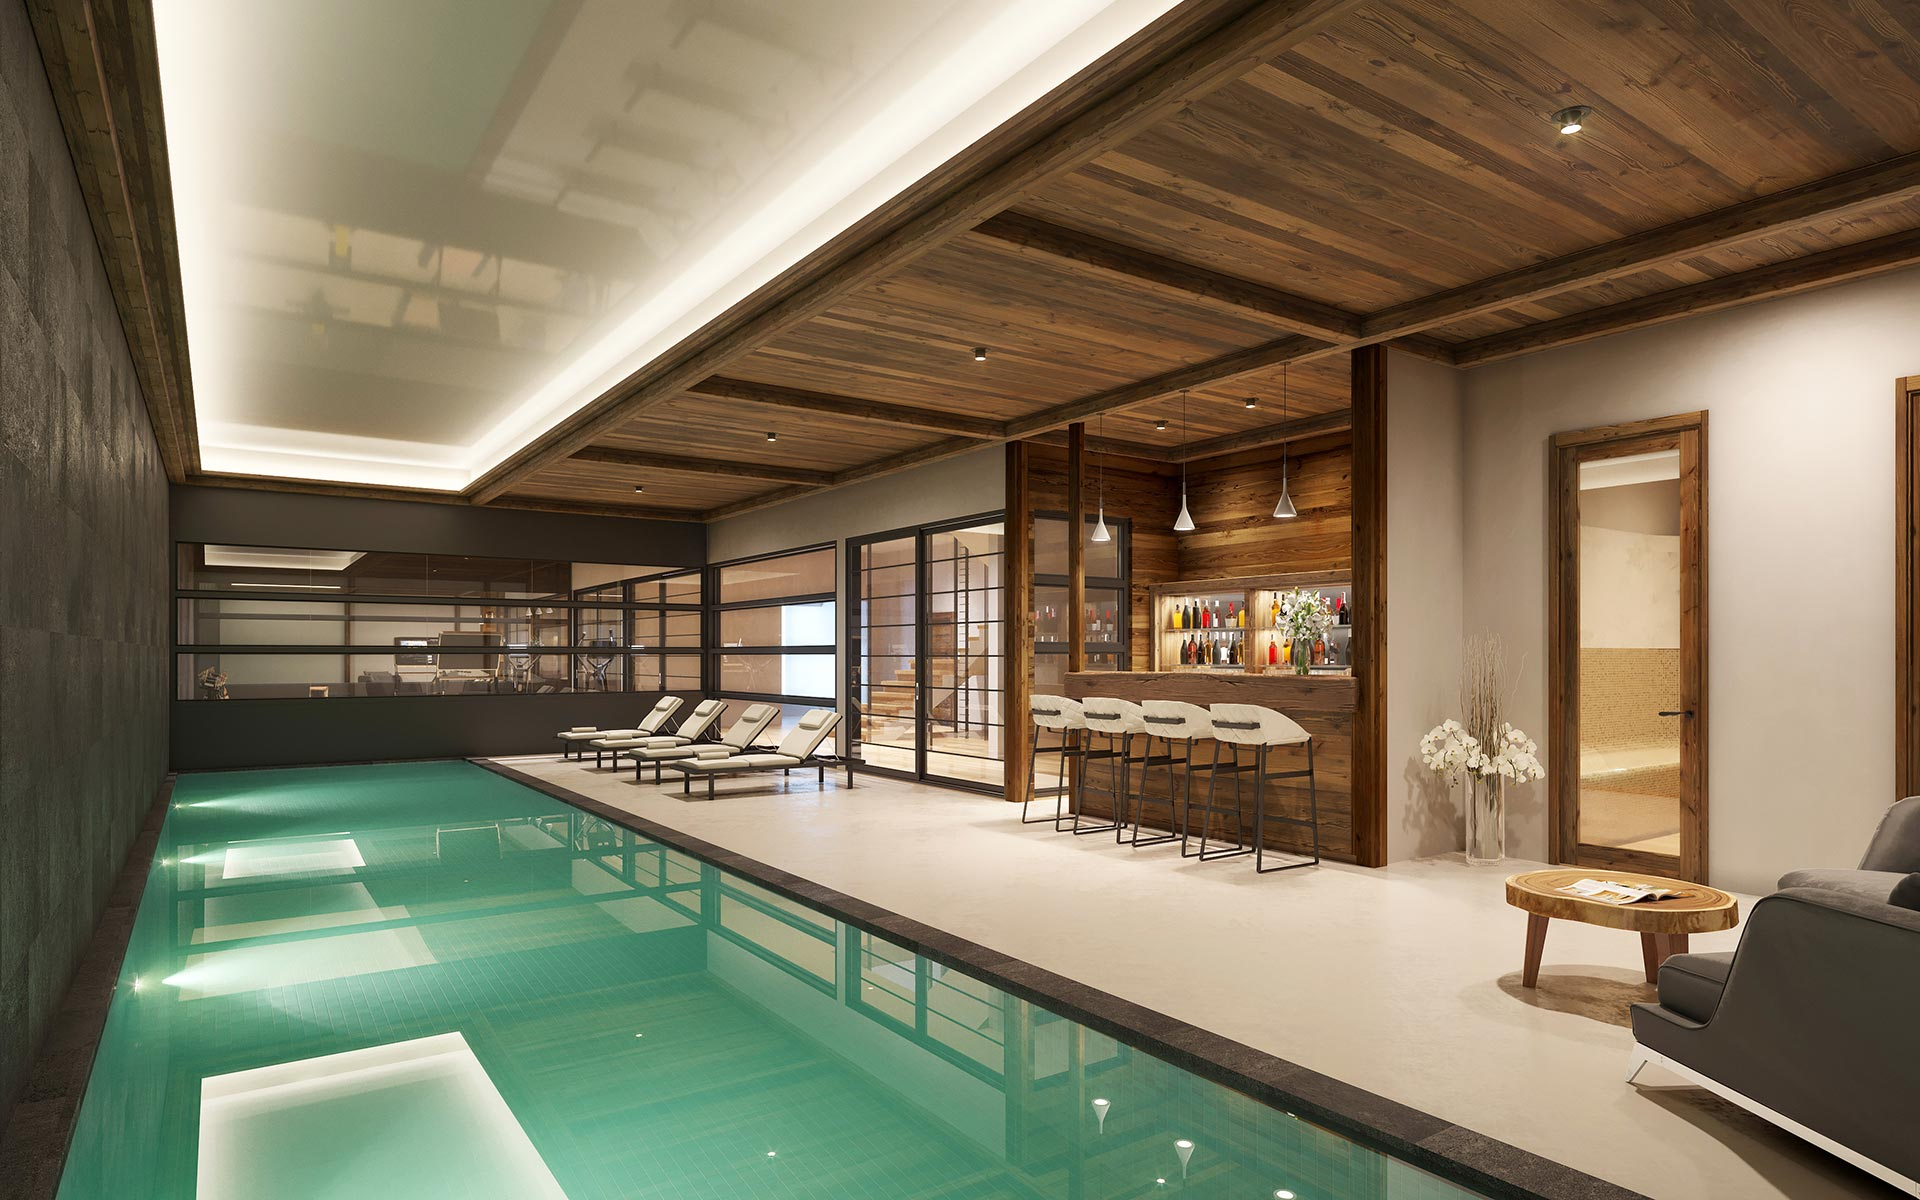 3D Synthesis image of a pool in a luxury mountain chalet